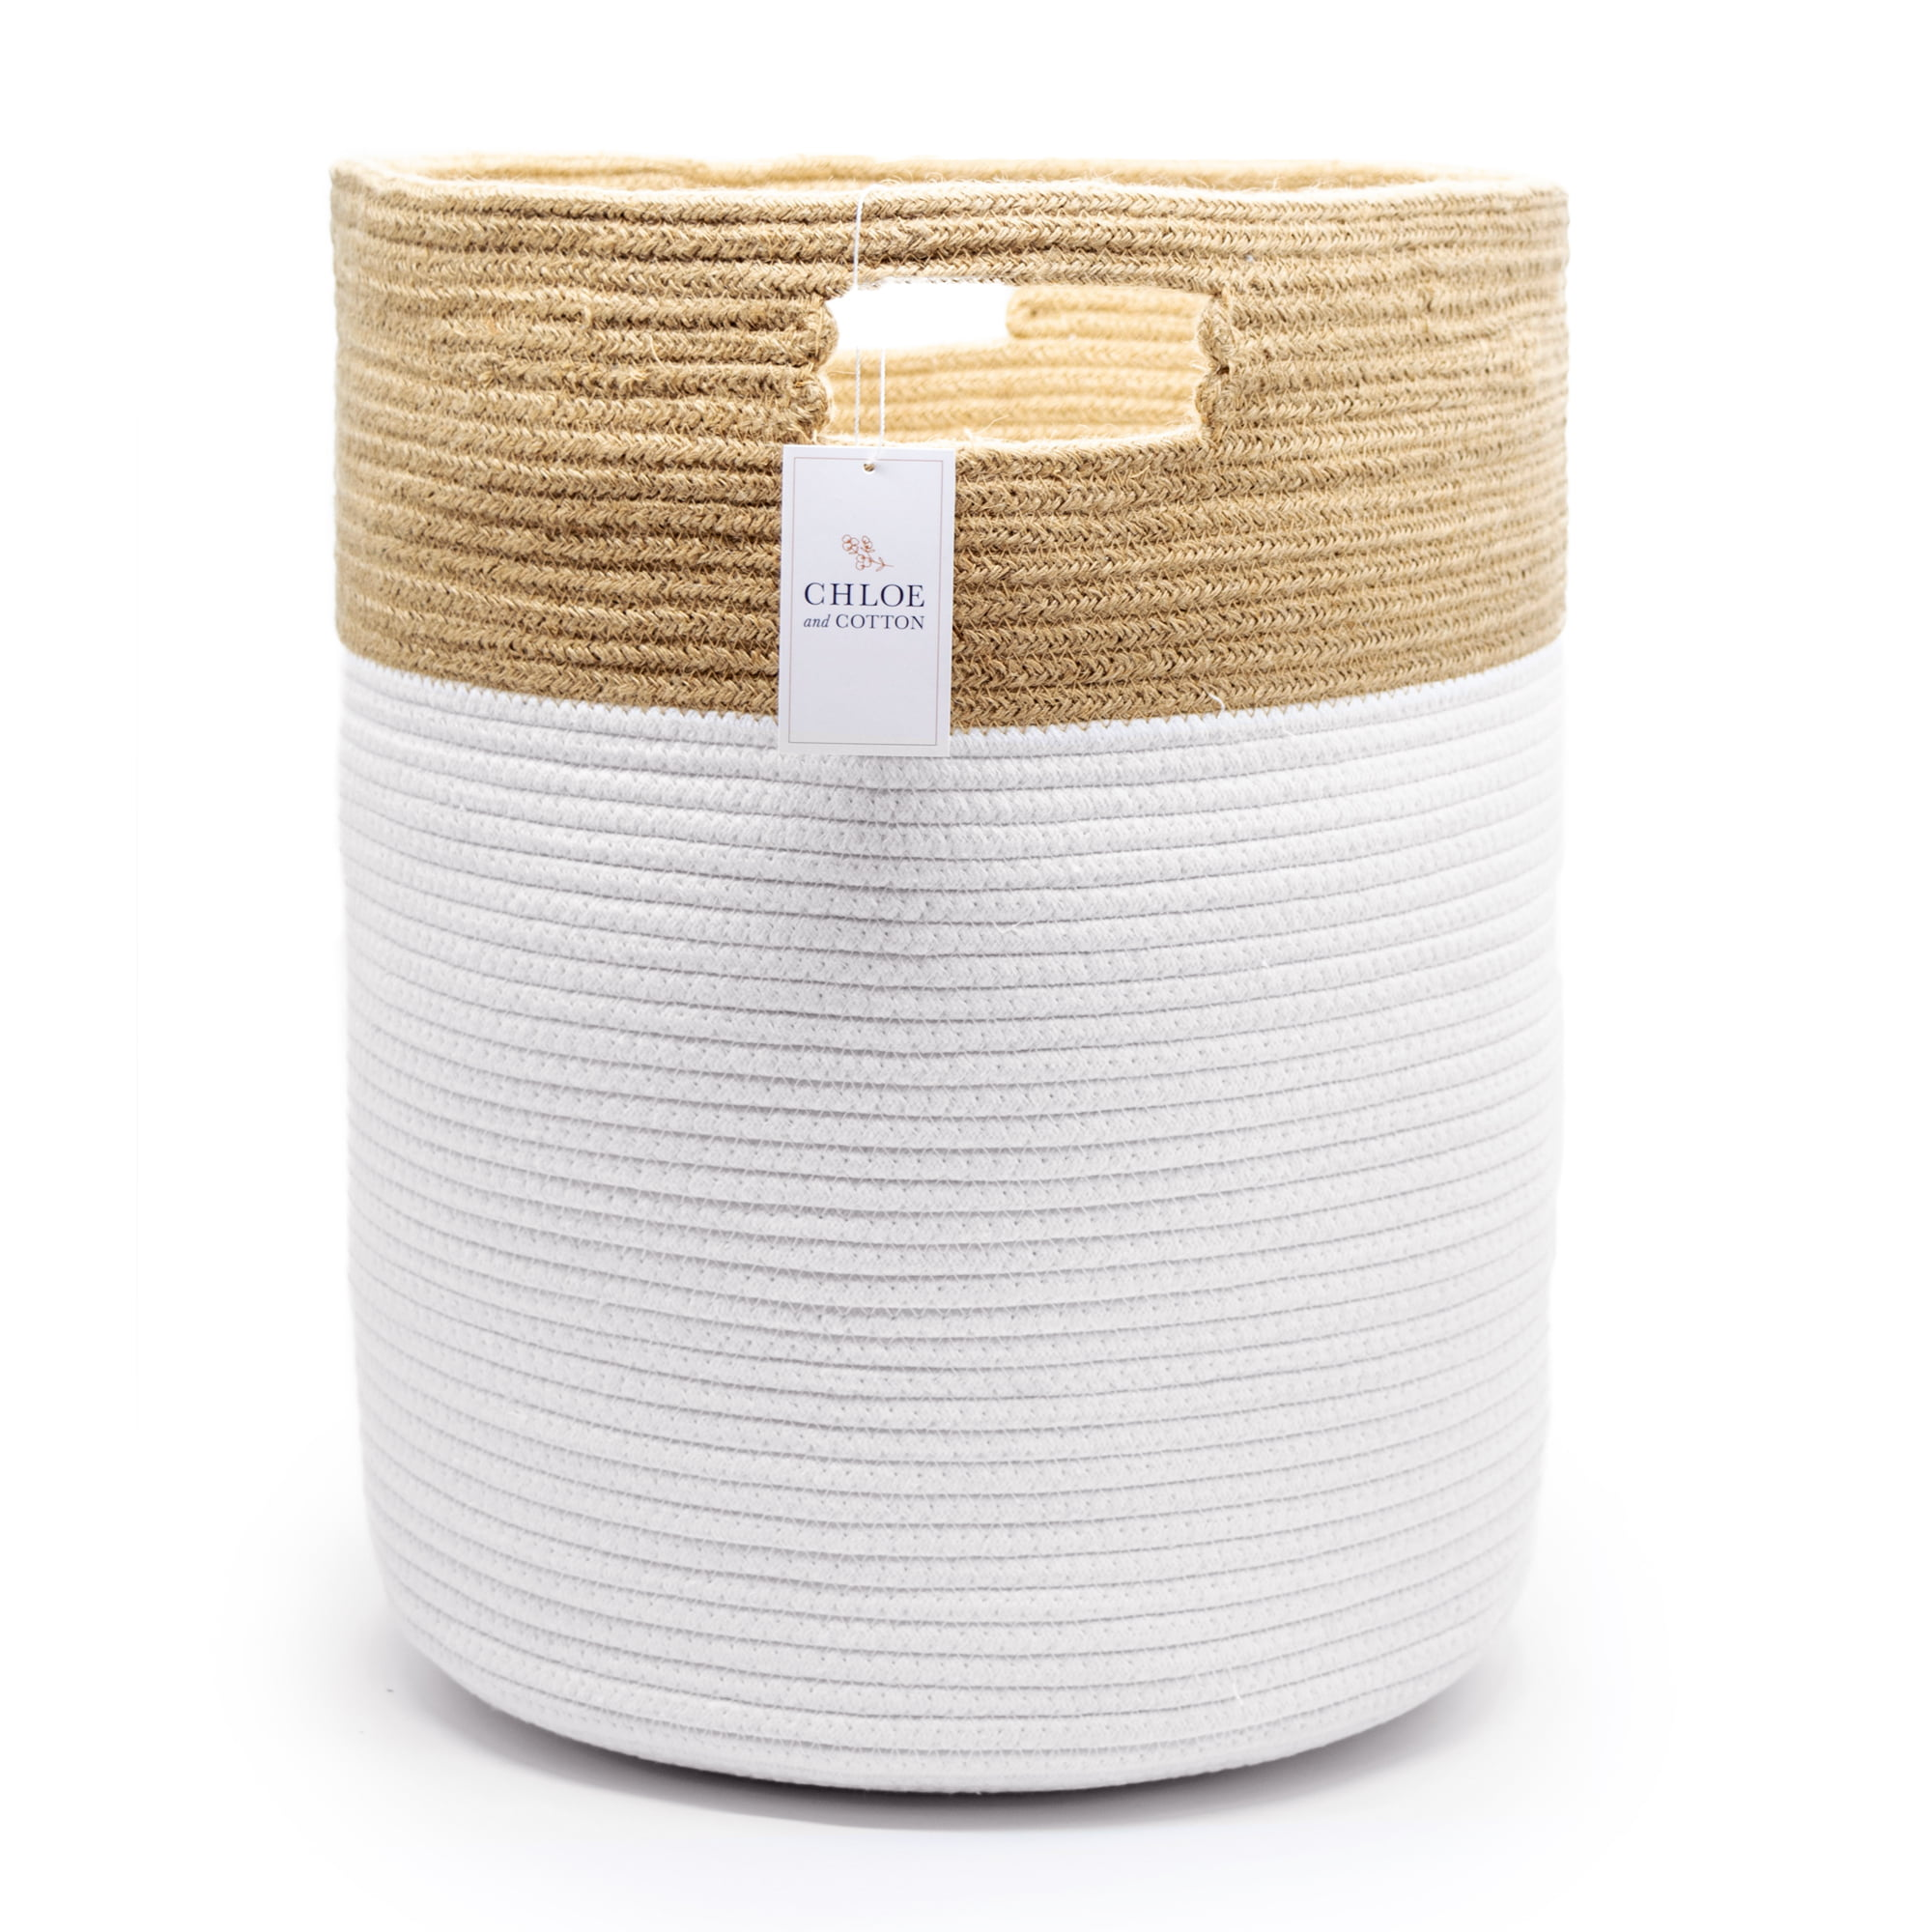 Chloe and Cotton XL Extra Large Woven Rope Laundry Basket ...